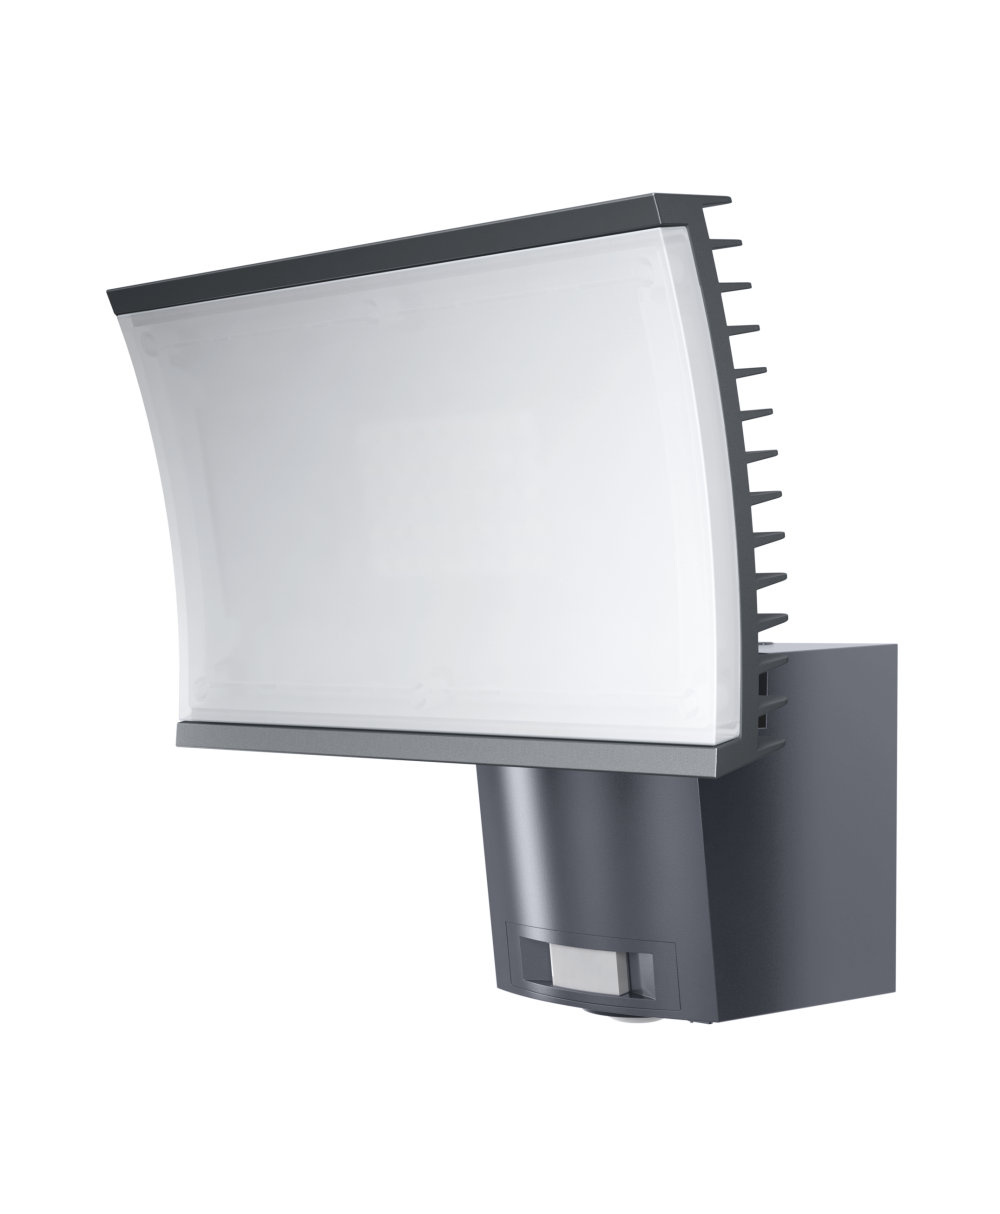 NOXLITE LED HP FLOODLIGHT II 40 W gray